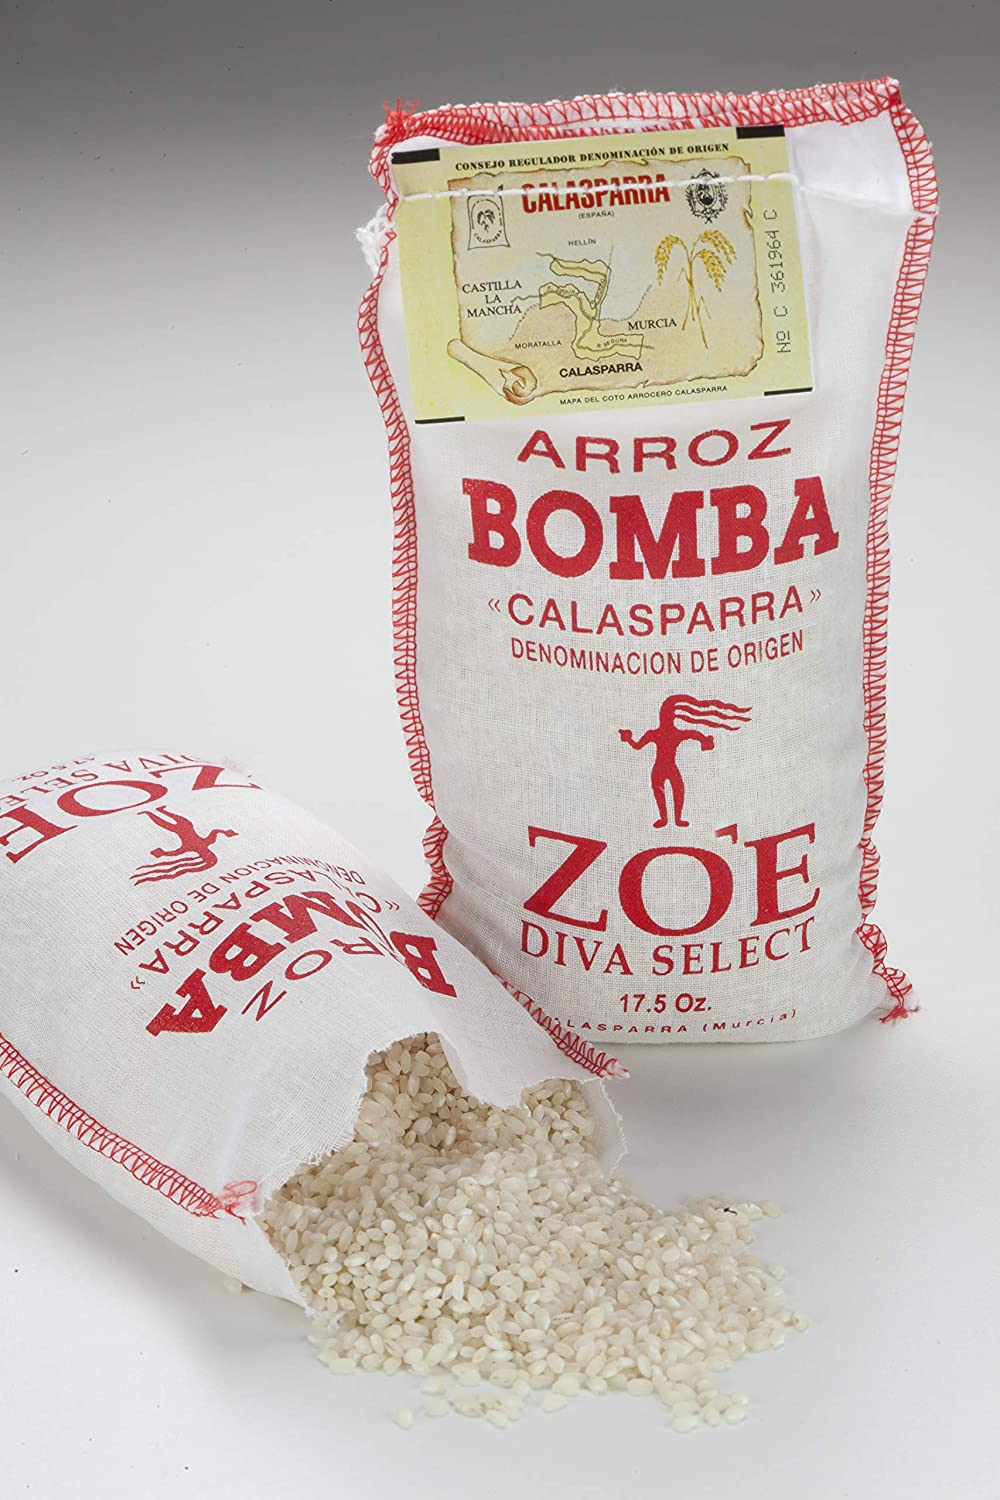 Zoe Diva Select Bomba Arroz: Amazon.com: Grocery & Gourmet Food